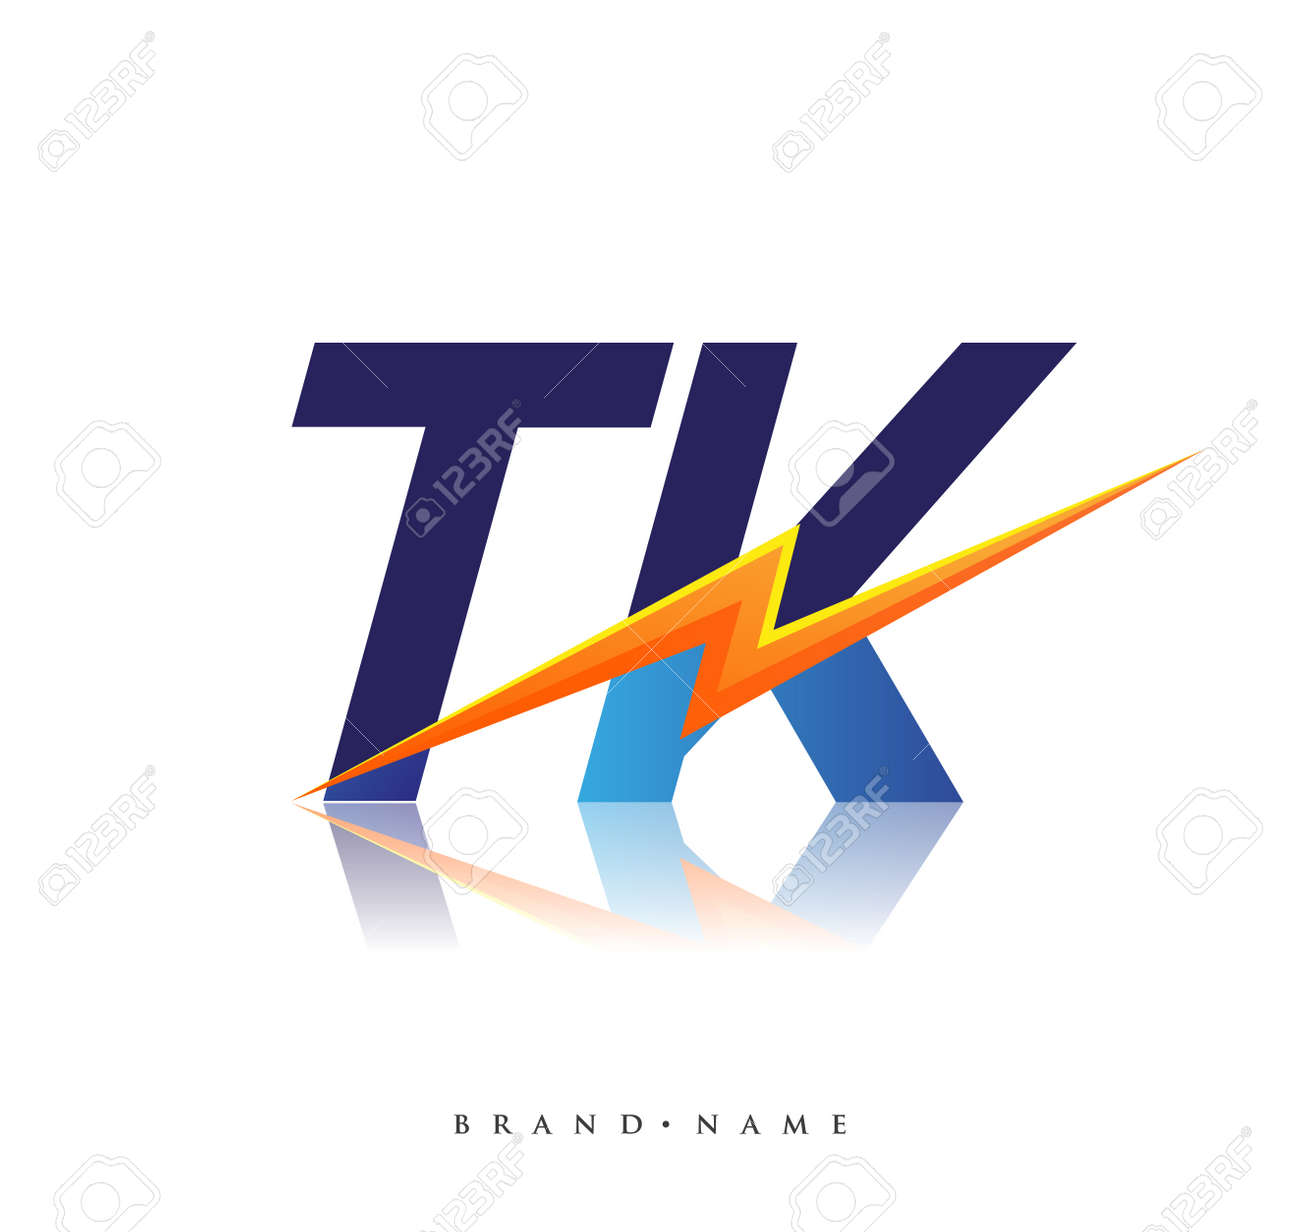 Letter TK logo with Lightning icon, letter combination Power Energy Logo design for Creative Power ideas, web, business and company. - 163272389